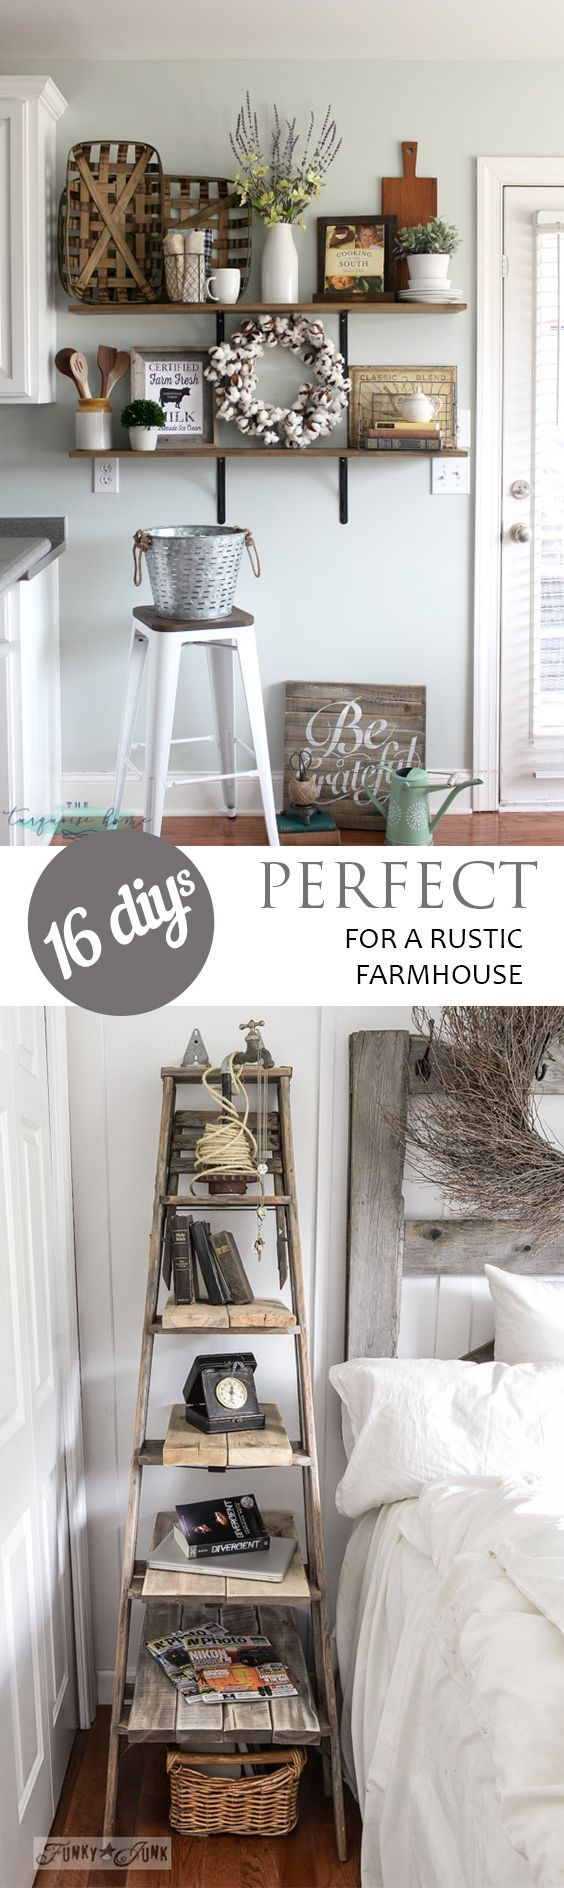 find this pin and more on home decor and design - Home Rustic Decor